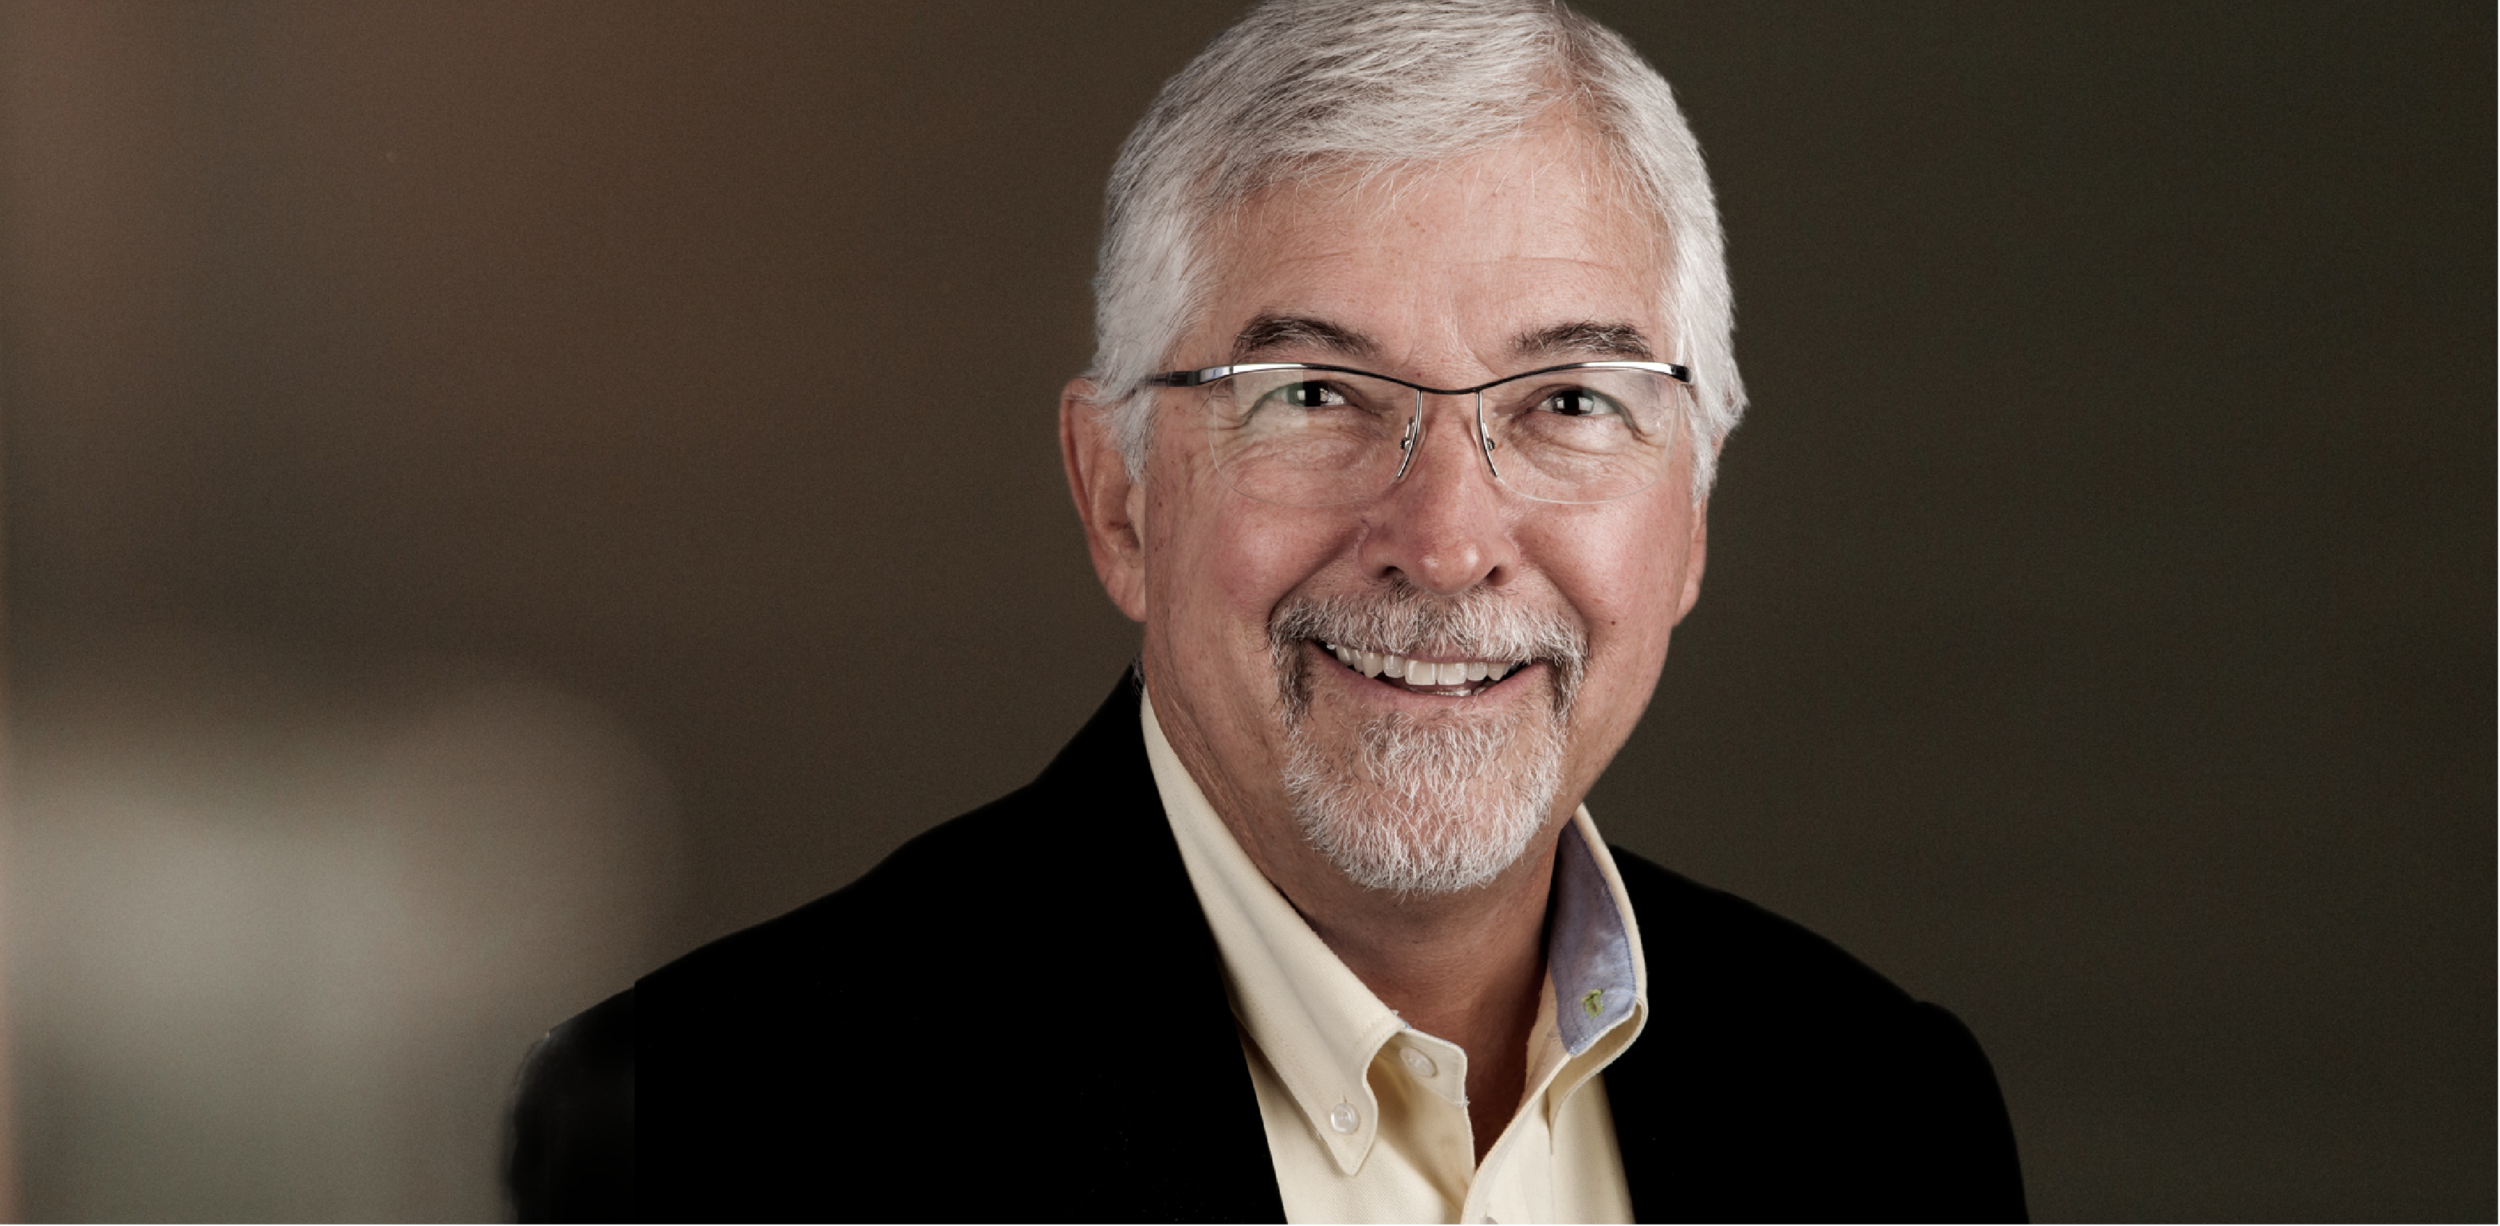 CURT RICHARDSON - FounderCurt Richardson is the Founder of Old Elk Distillery, Founder, Chairman, and Chief Visionary Officer of Otter Products, LLC, and Co-Founder and Chairman of Blue Ocean Enterprises, Inc.